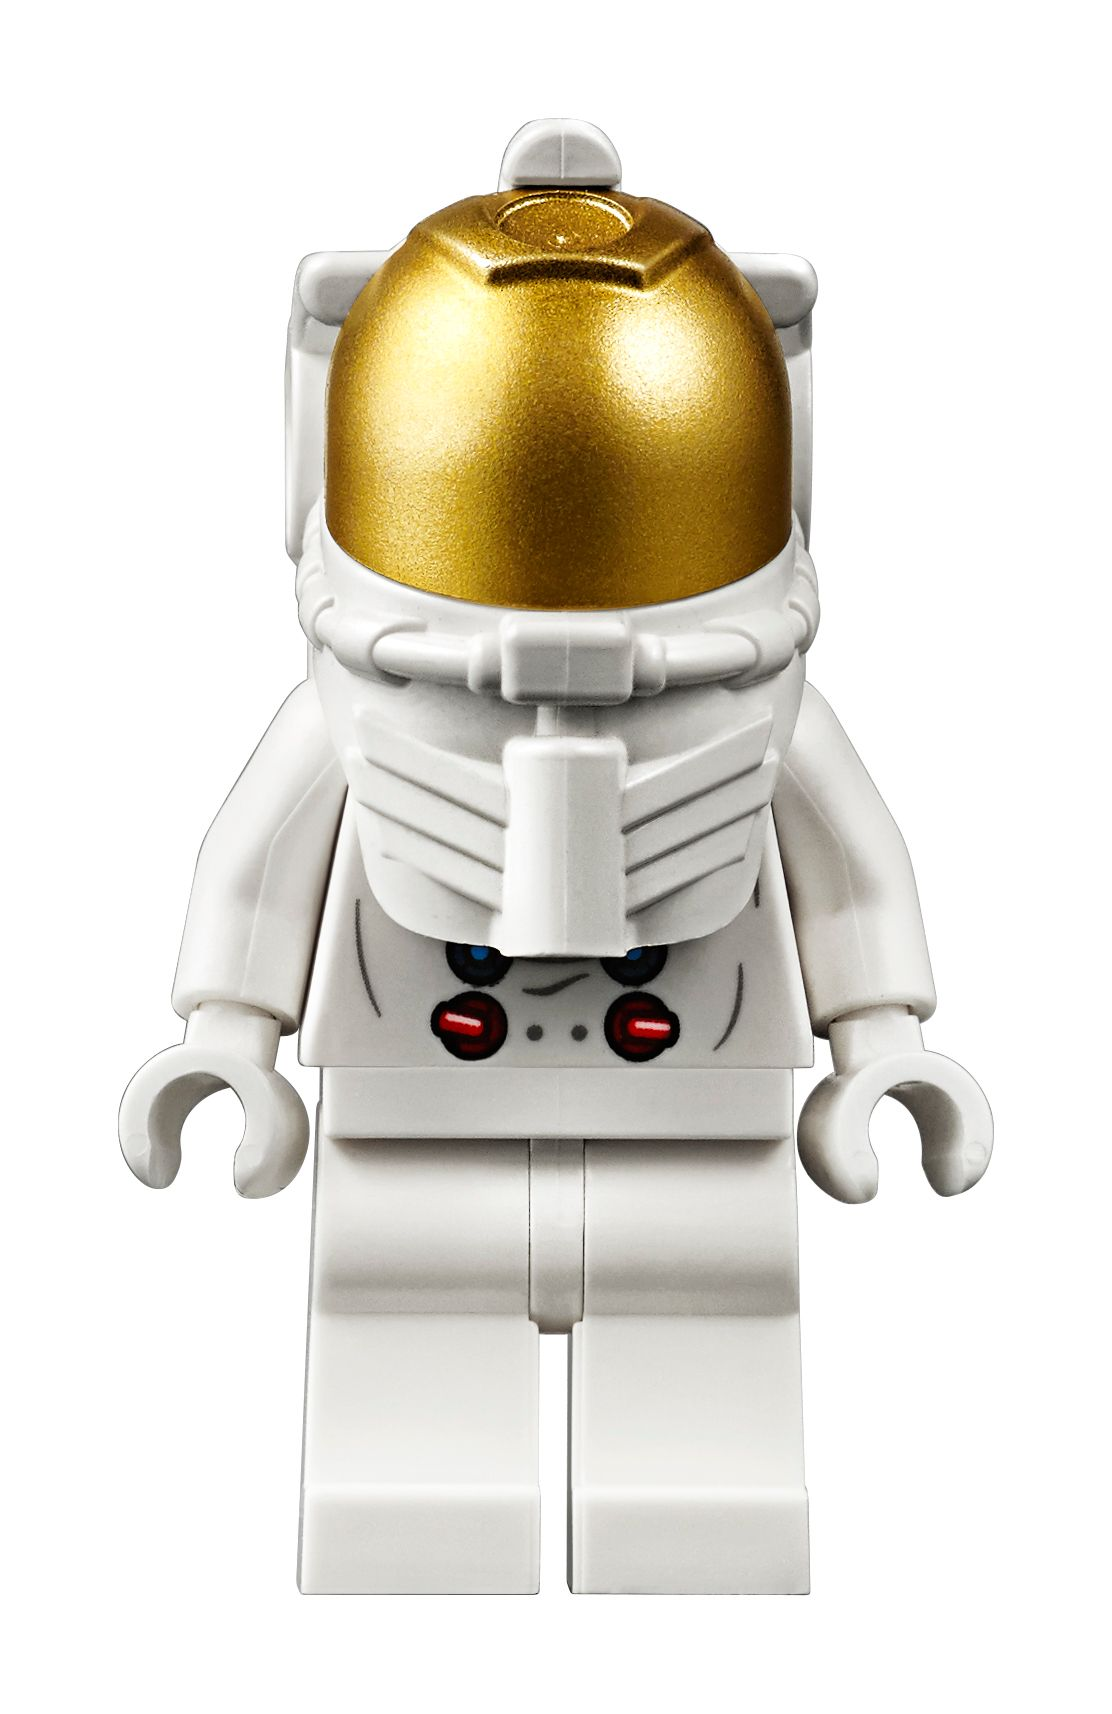 LEGO Advanced Models 10266 NASA Apollo 11 Mondlandefähre LEGO_10266_alt17.jpg